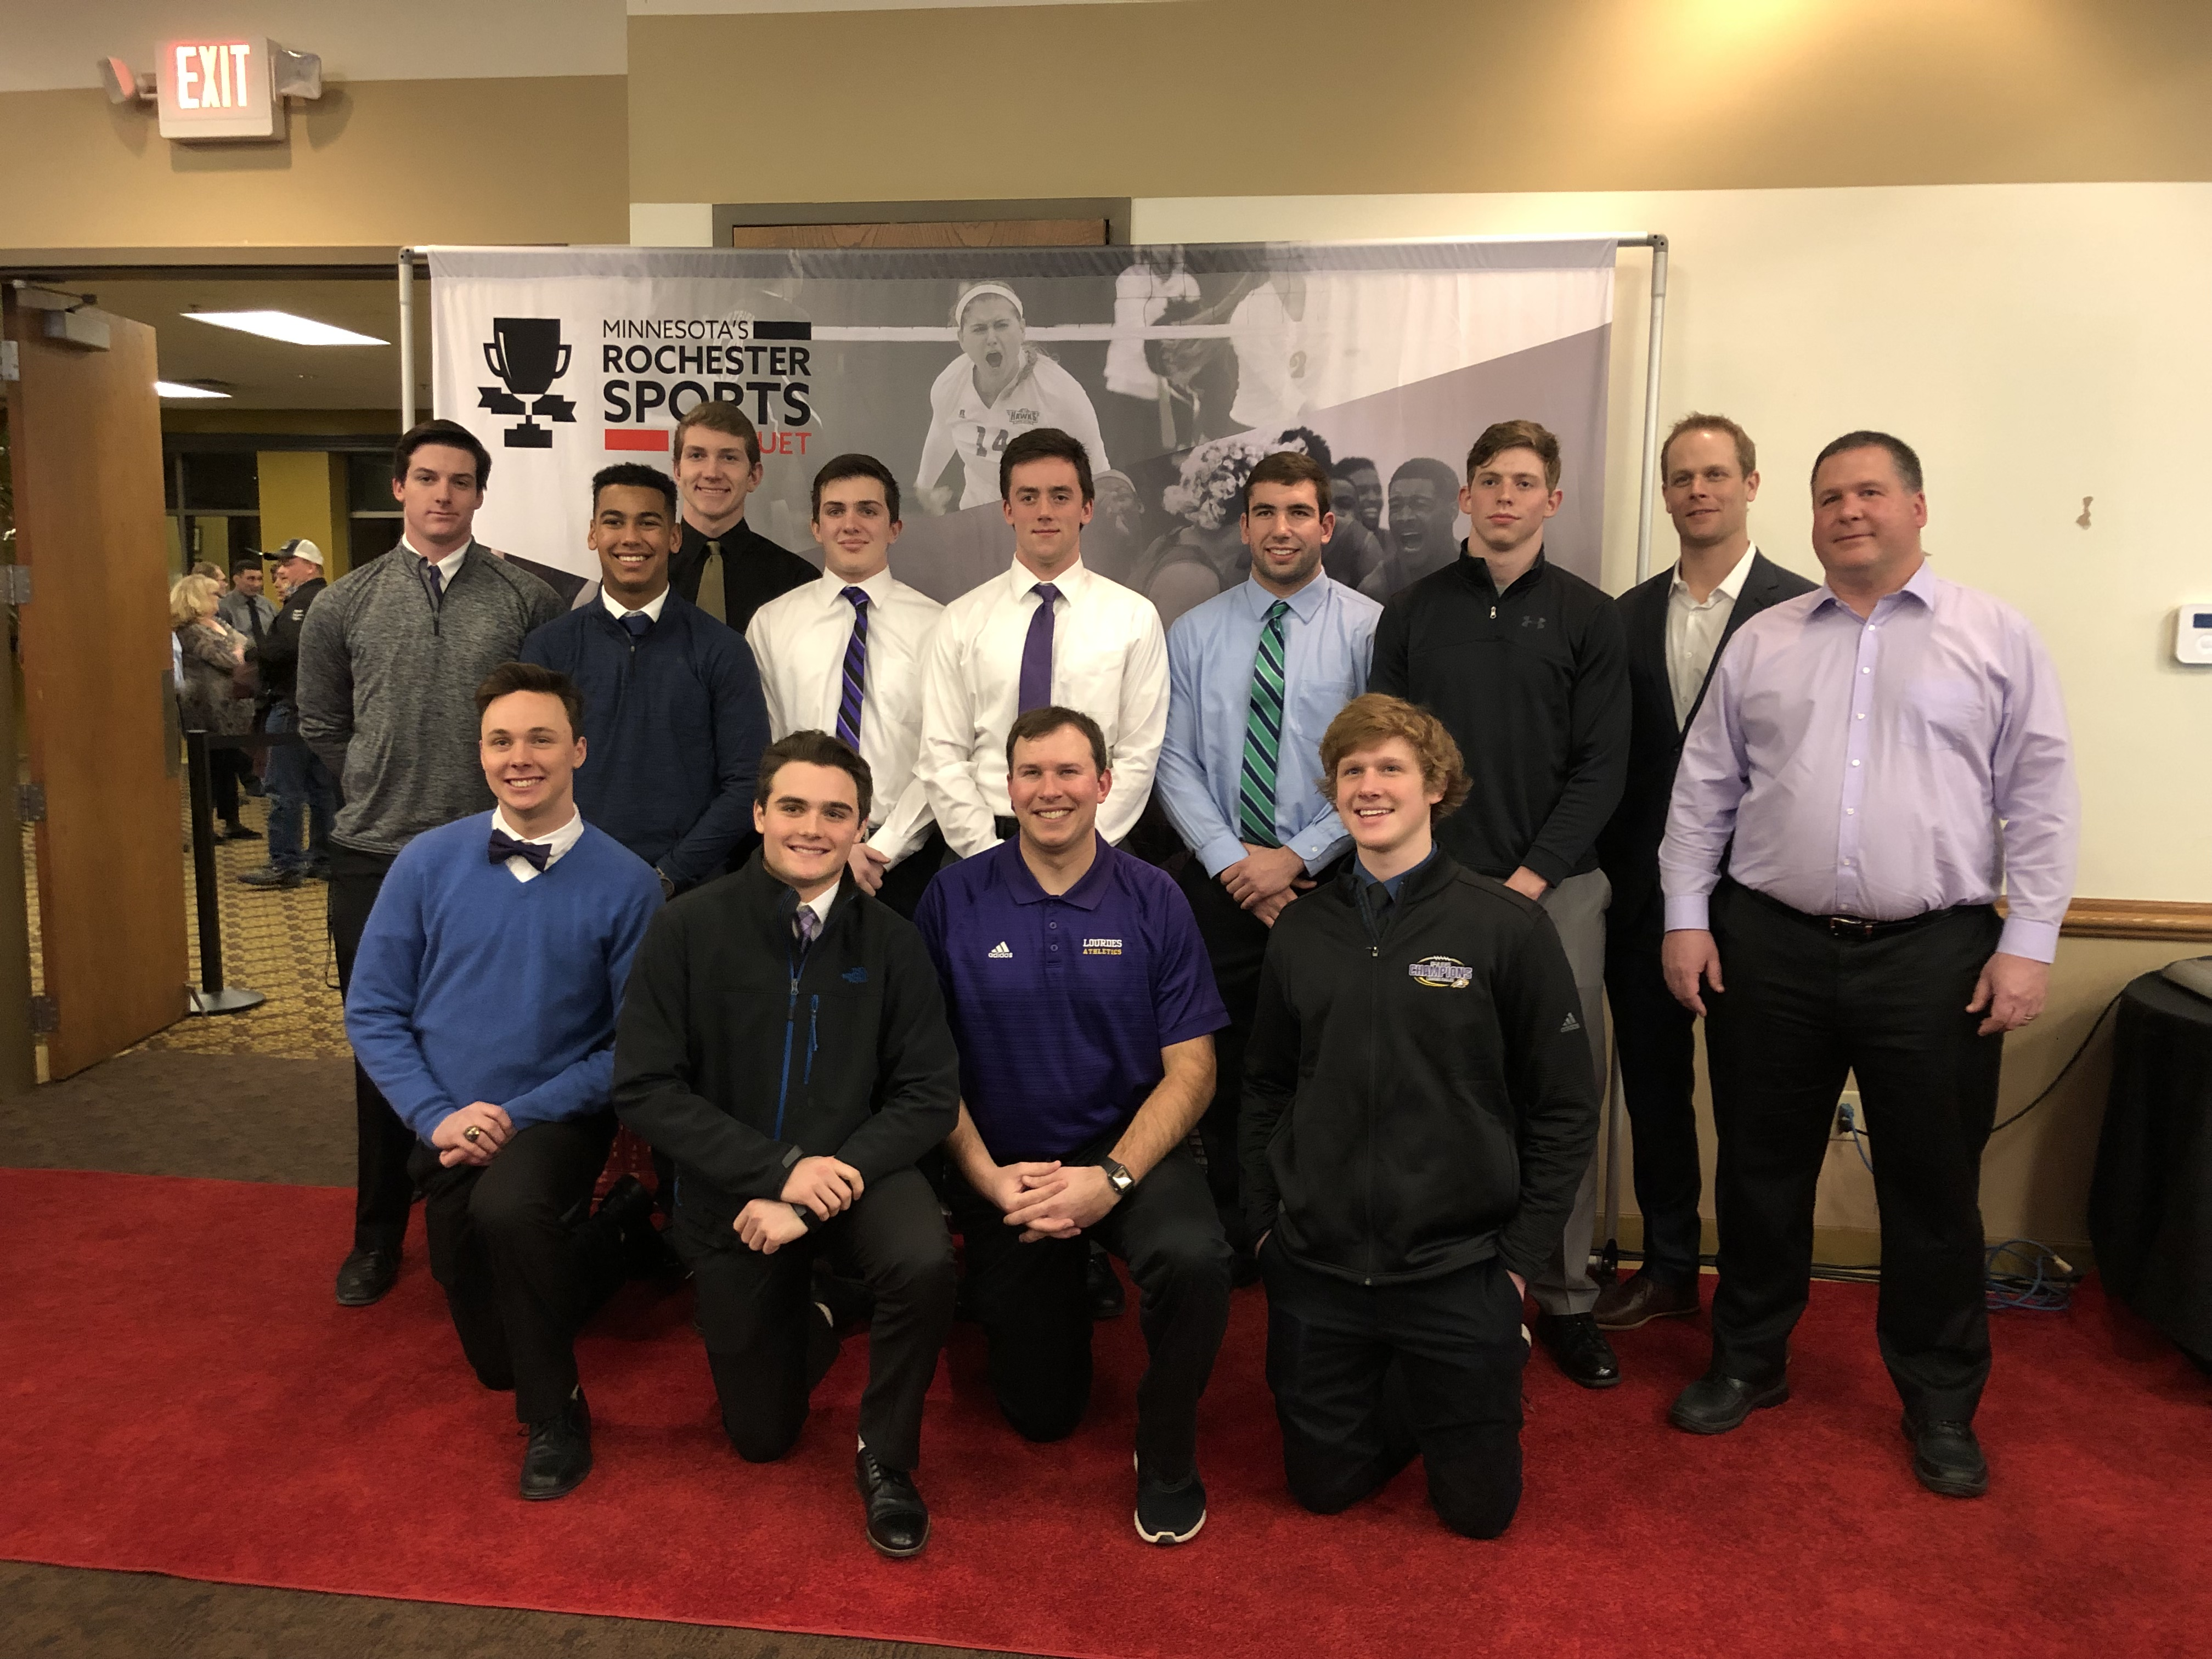 Lourdes Football wins Rochester Sports Banquet Team of the Year